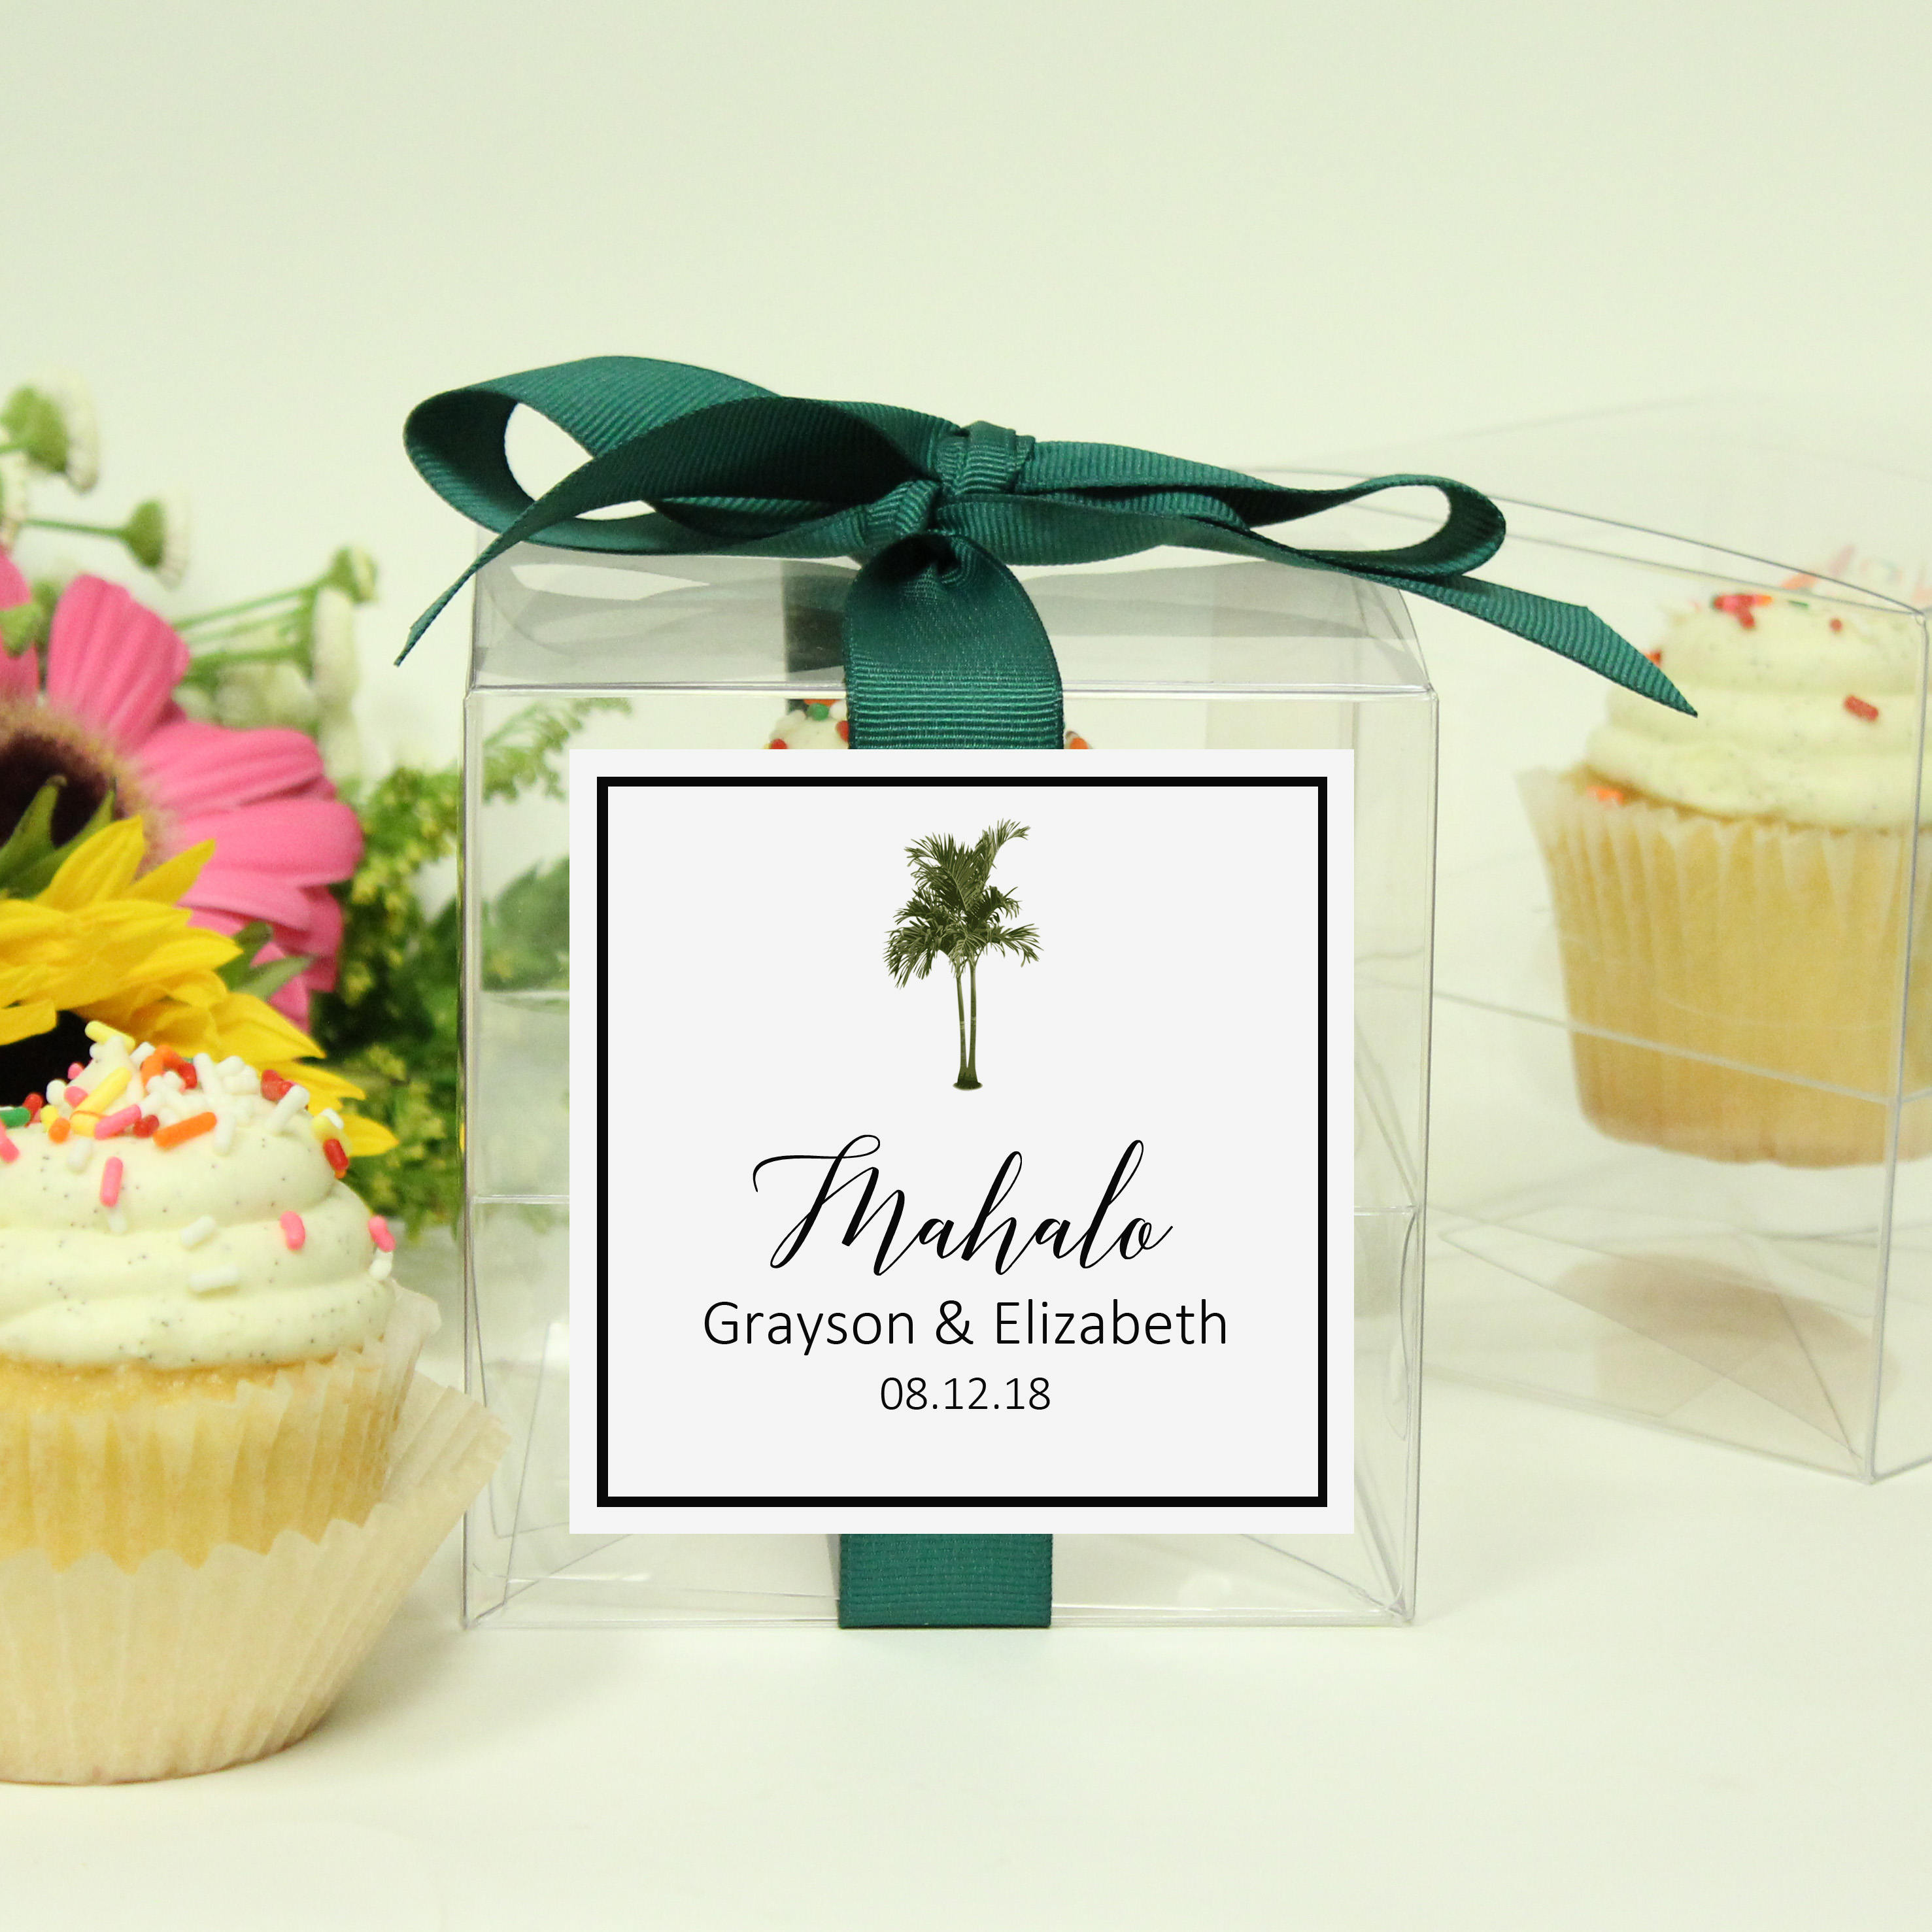 8 Vintage Palm Tree Cupcake Boxes Tropical Wedding Favor Etsy